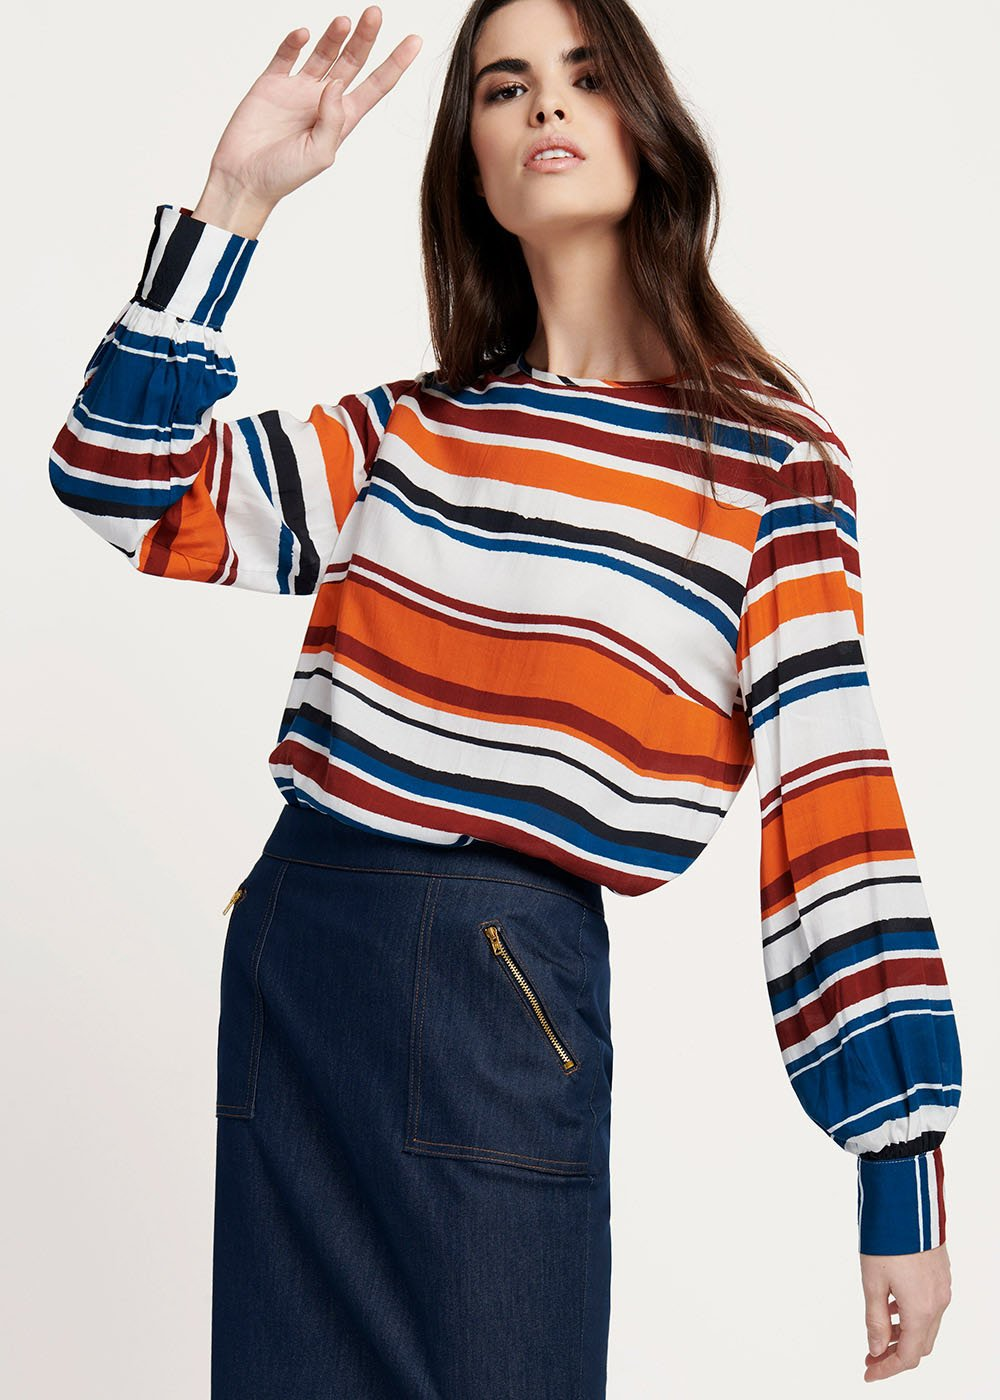 Shayla viscose T-shirt with horizontal stripes patterns - White / Marina Stripes - Woman